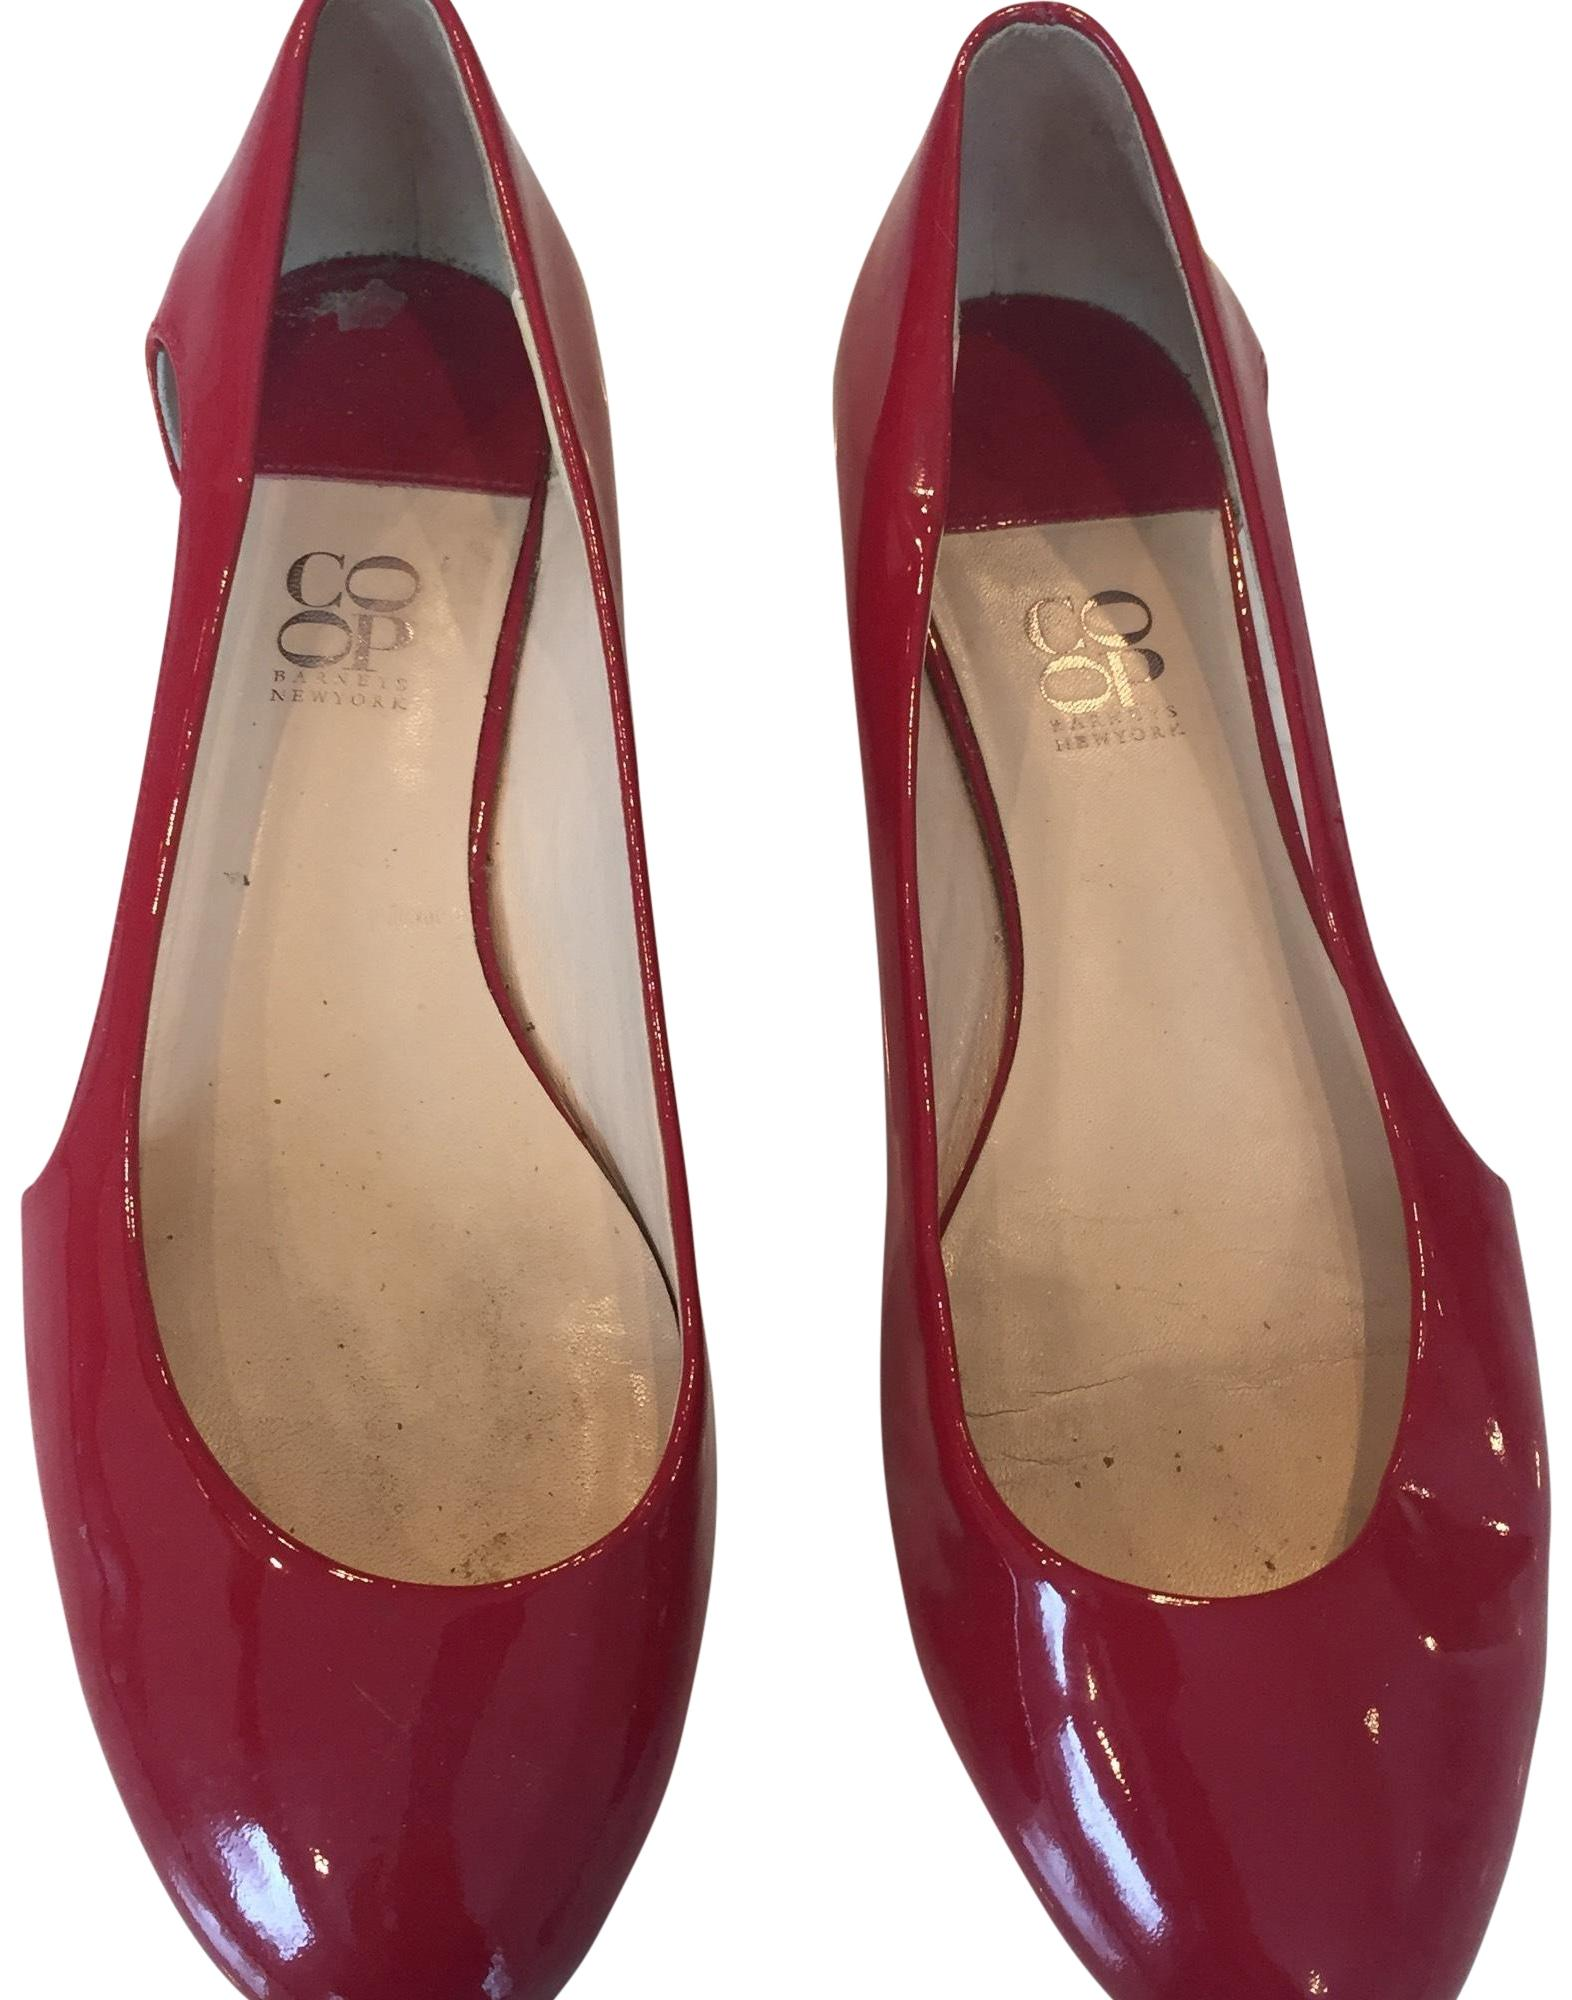 98bf0756075d Barneys Co-Op Red Patent Patent Patent Leather Flats Size EU 37.5 (Approx.